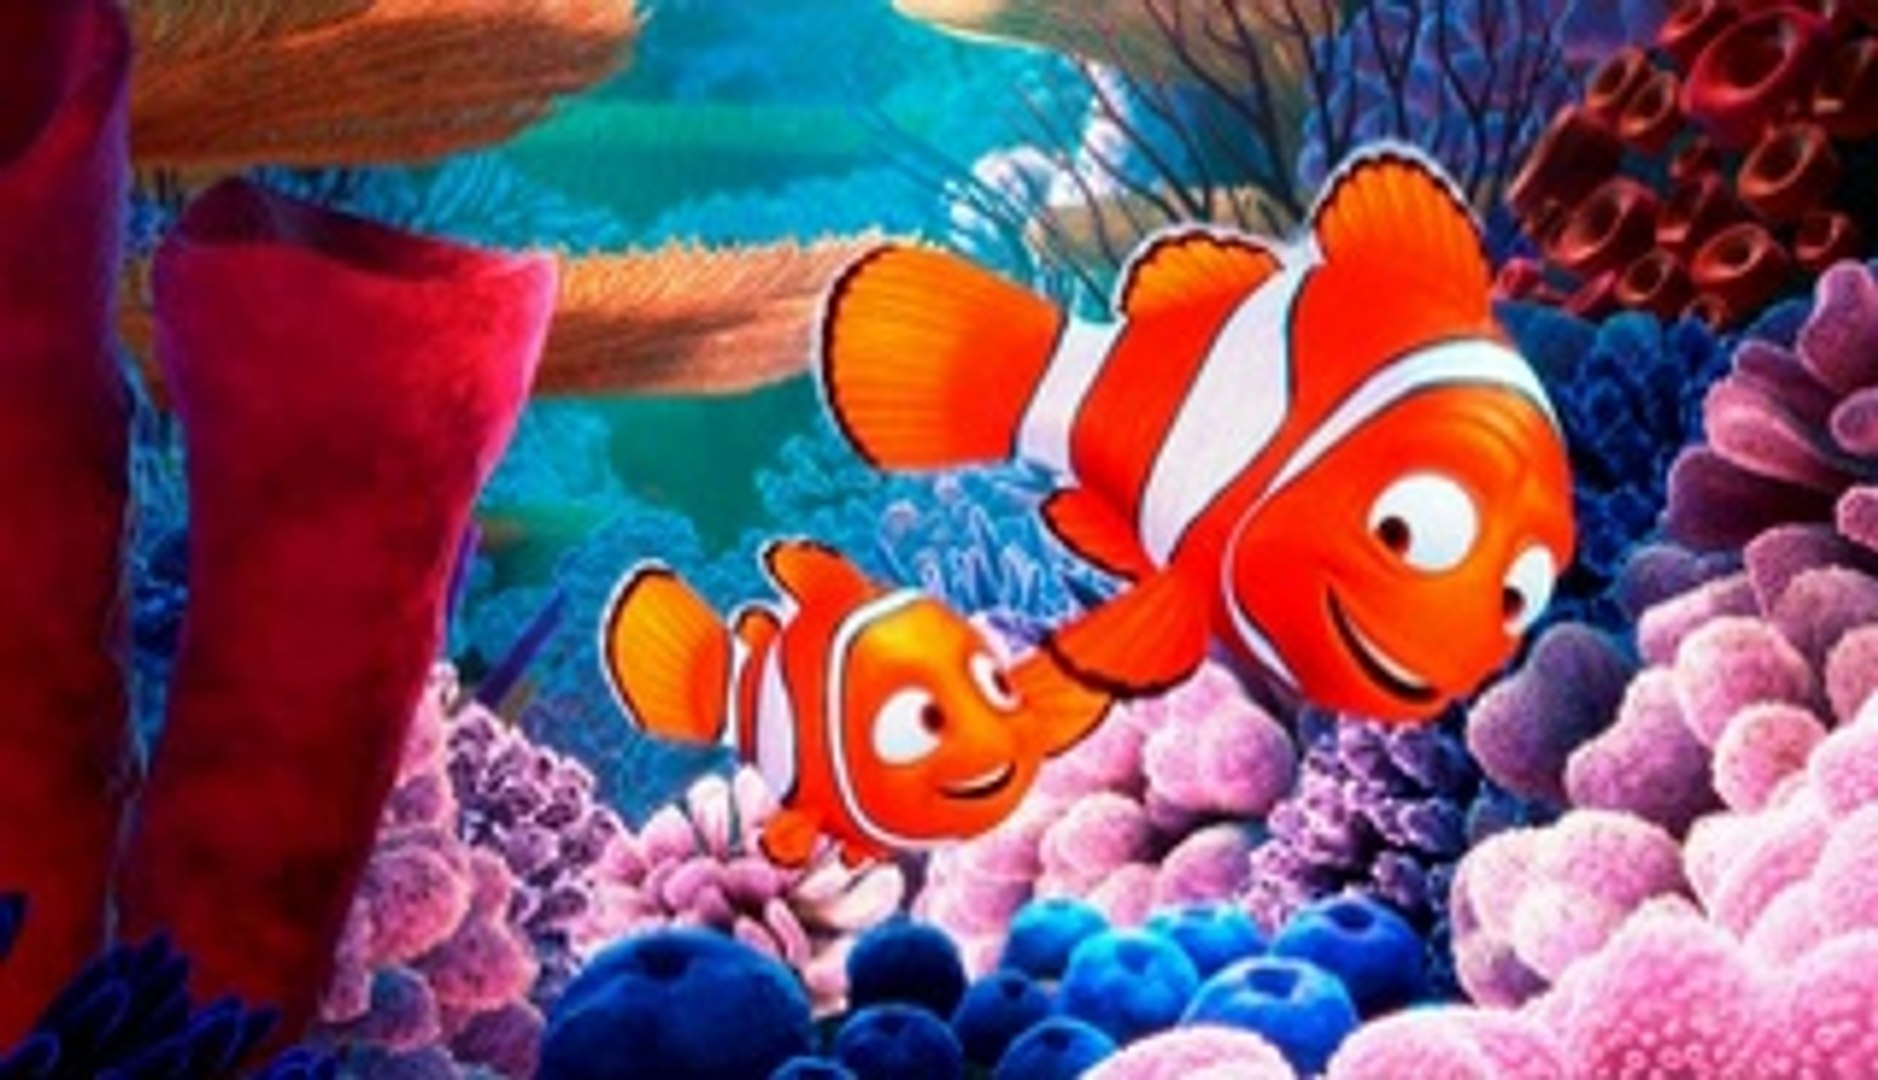 finding nemo 2 full movie in tamil free download hd